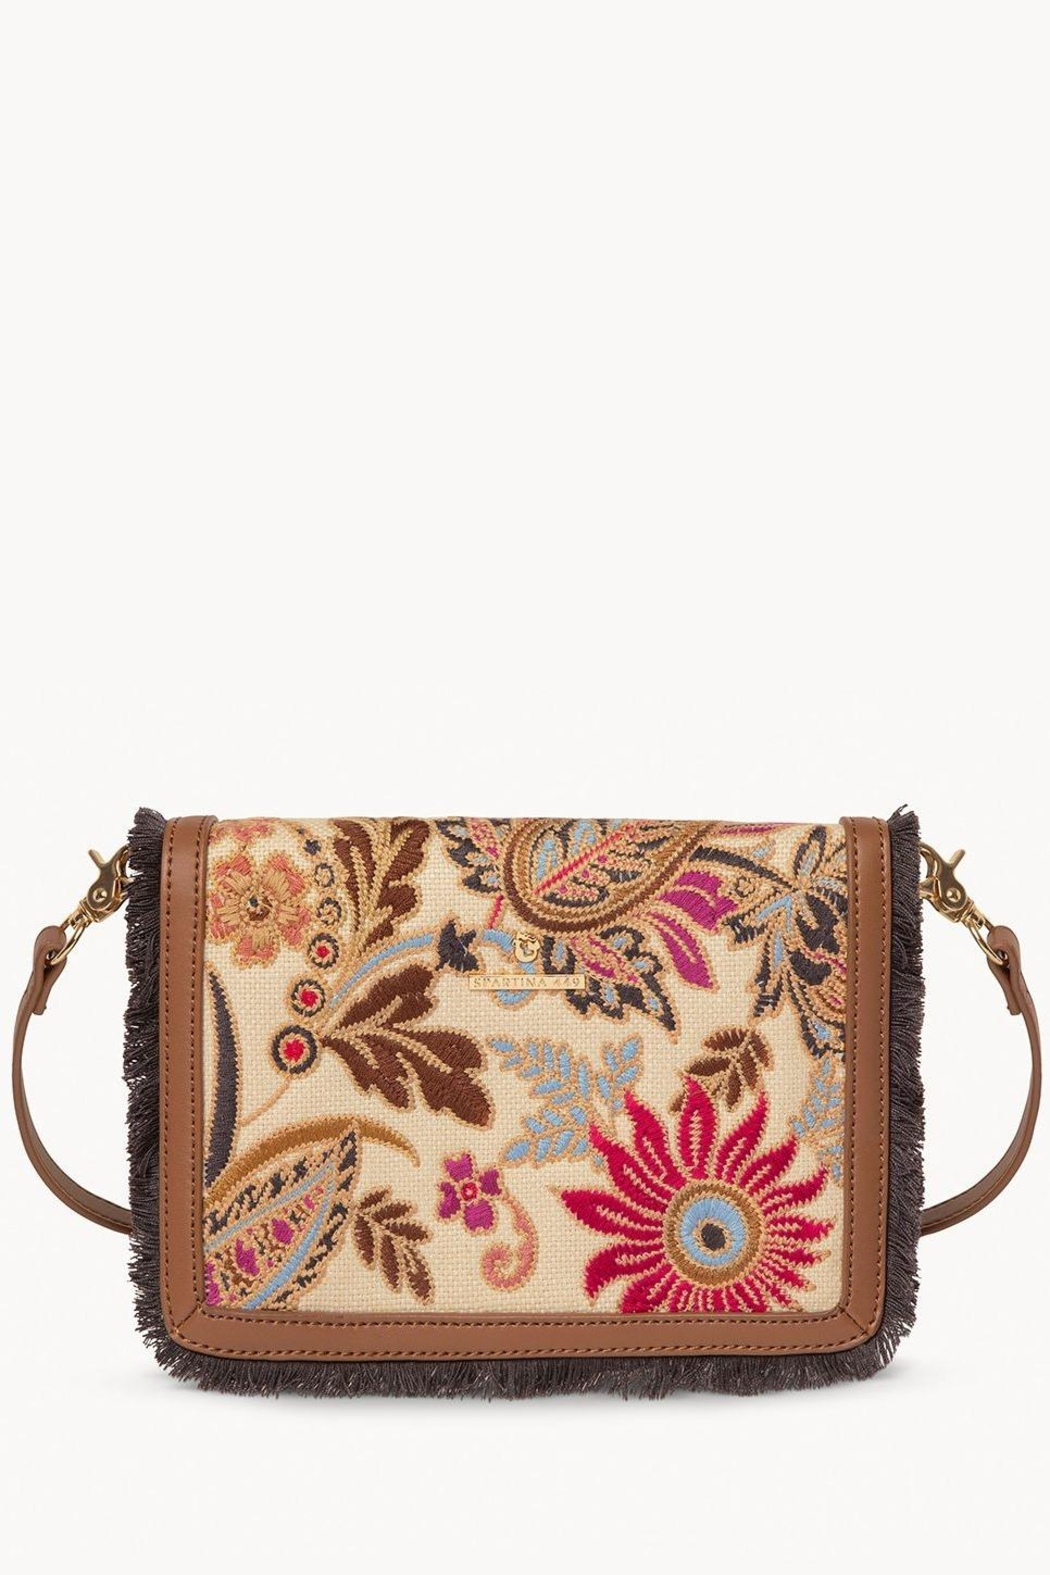 Spartina 449 Barbee Floral Crossbody - Main Image